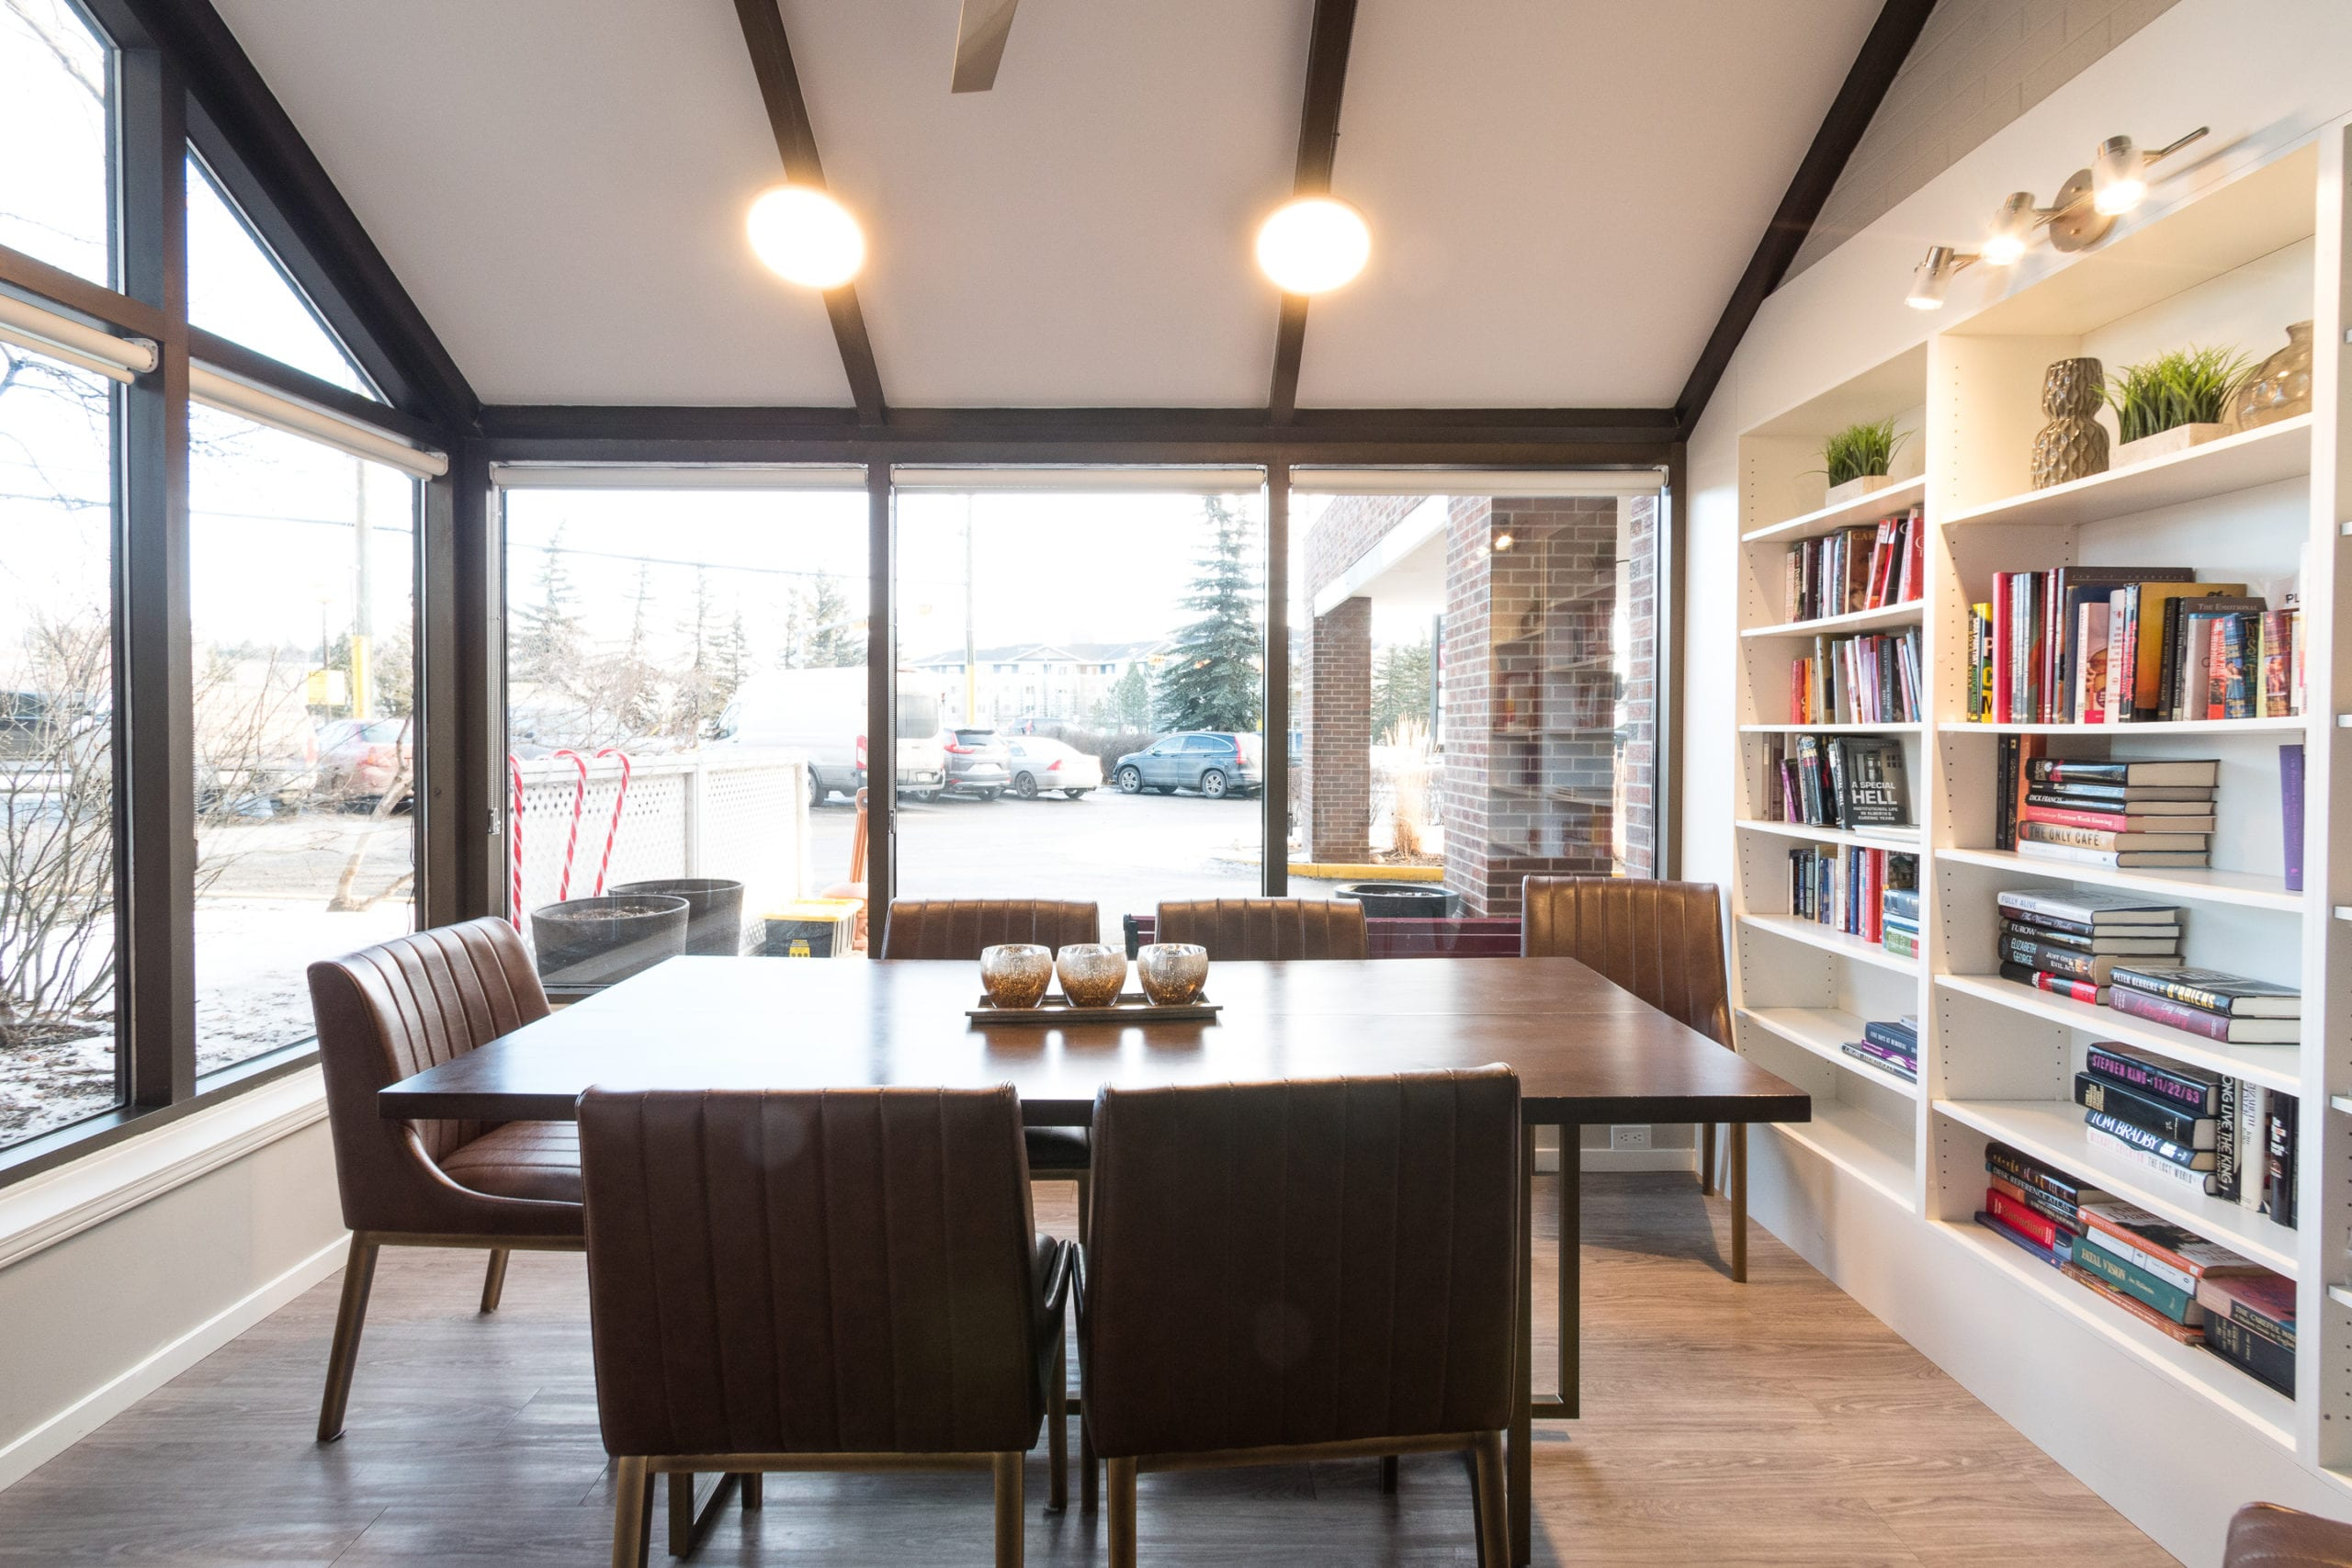 Hello Gorgeous - #705-145 point drive NW, Calgary AB - Tara Molina Real Estate (26 of 45)